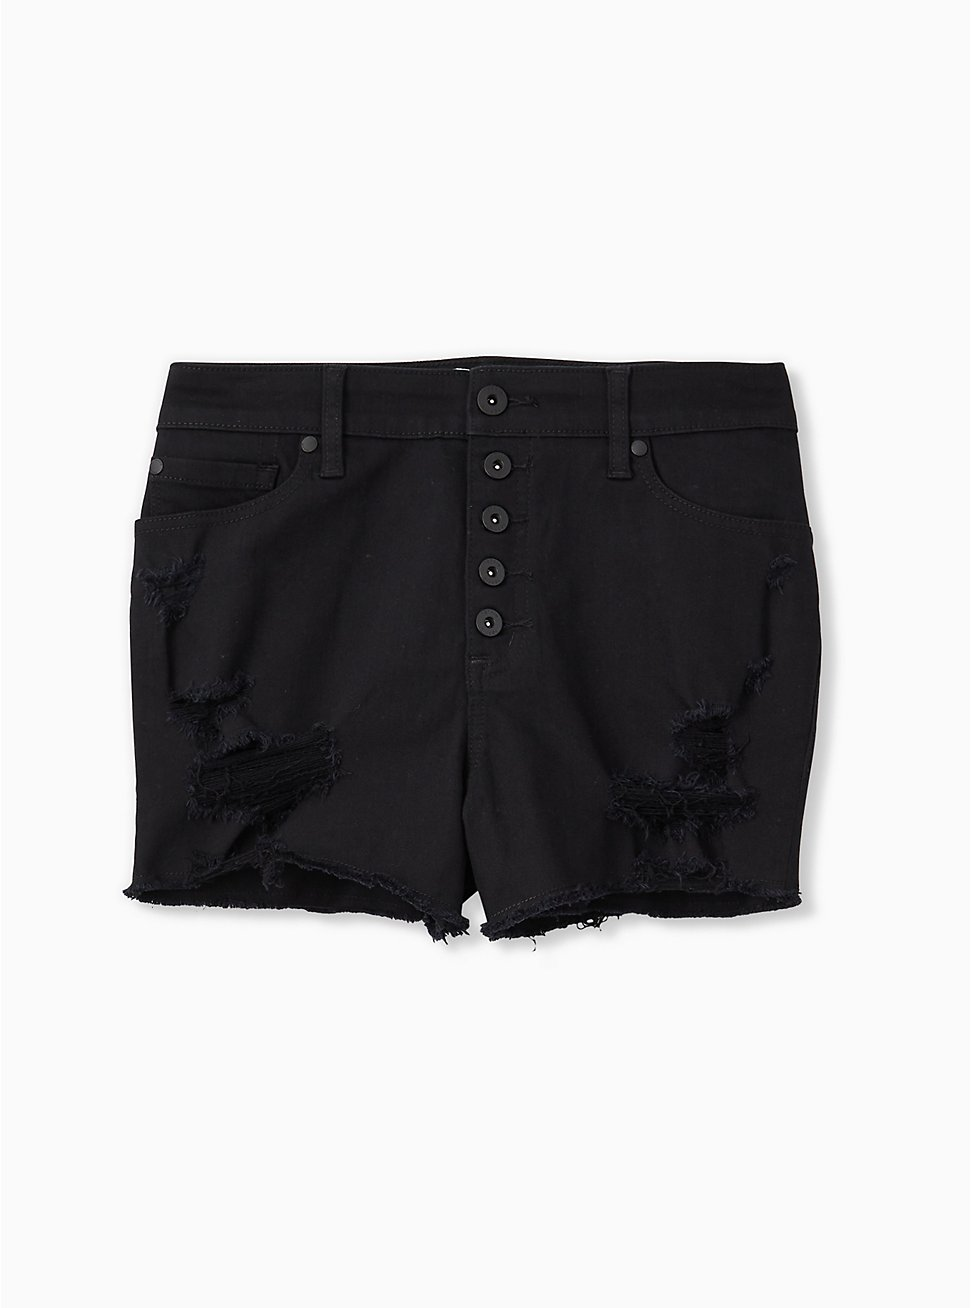 High Rise Short Short - Vintage Stretch Black, BLACK, hi-res